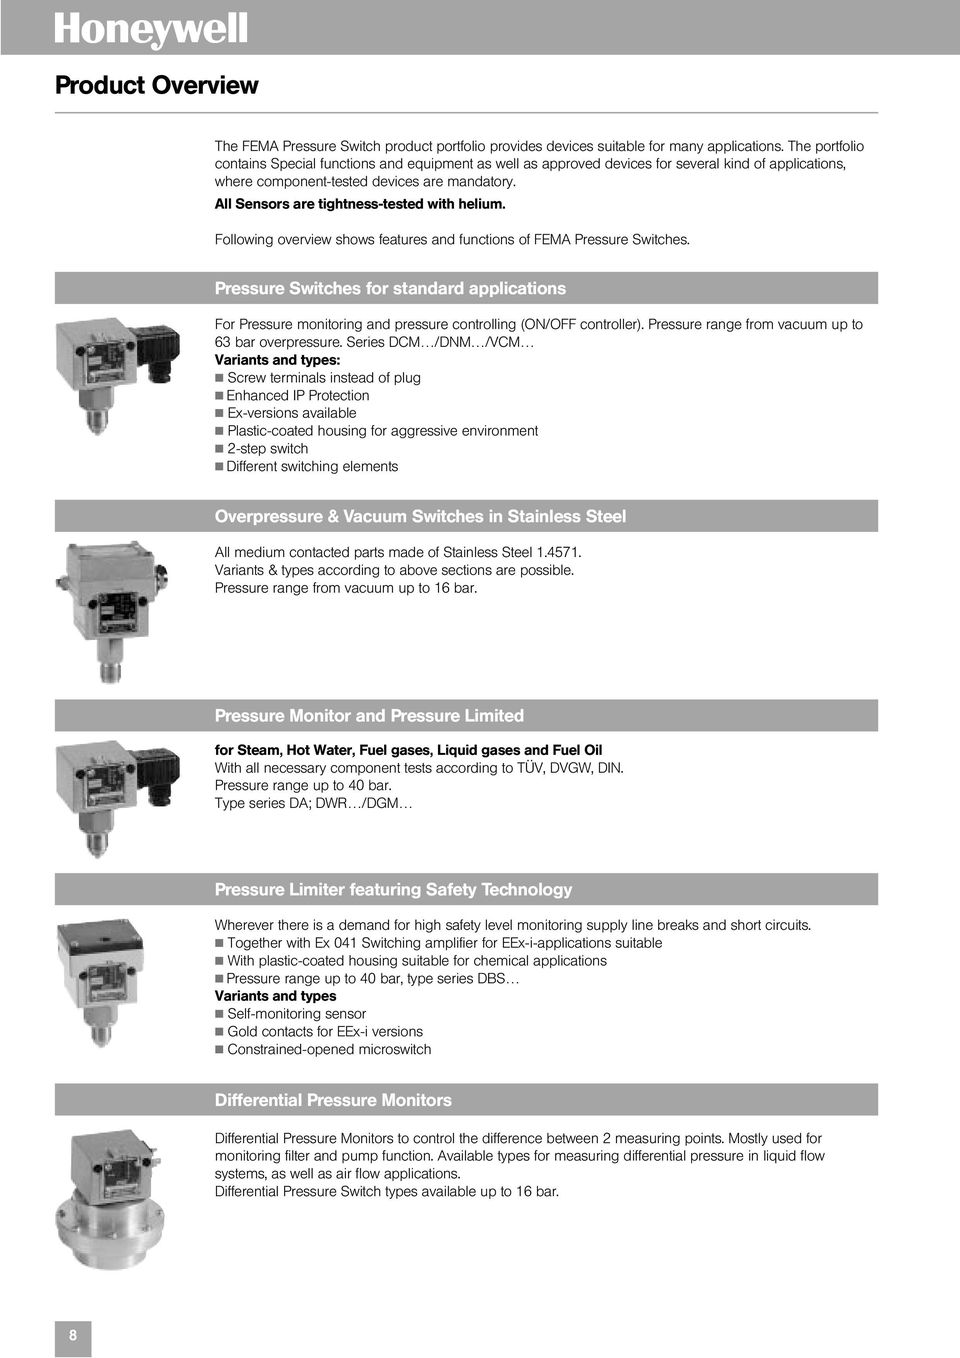 All Sensors are tightness-tested with helium. Following overview shows features and functions of FEMA Pressure Switches.